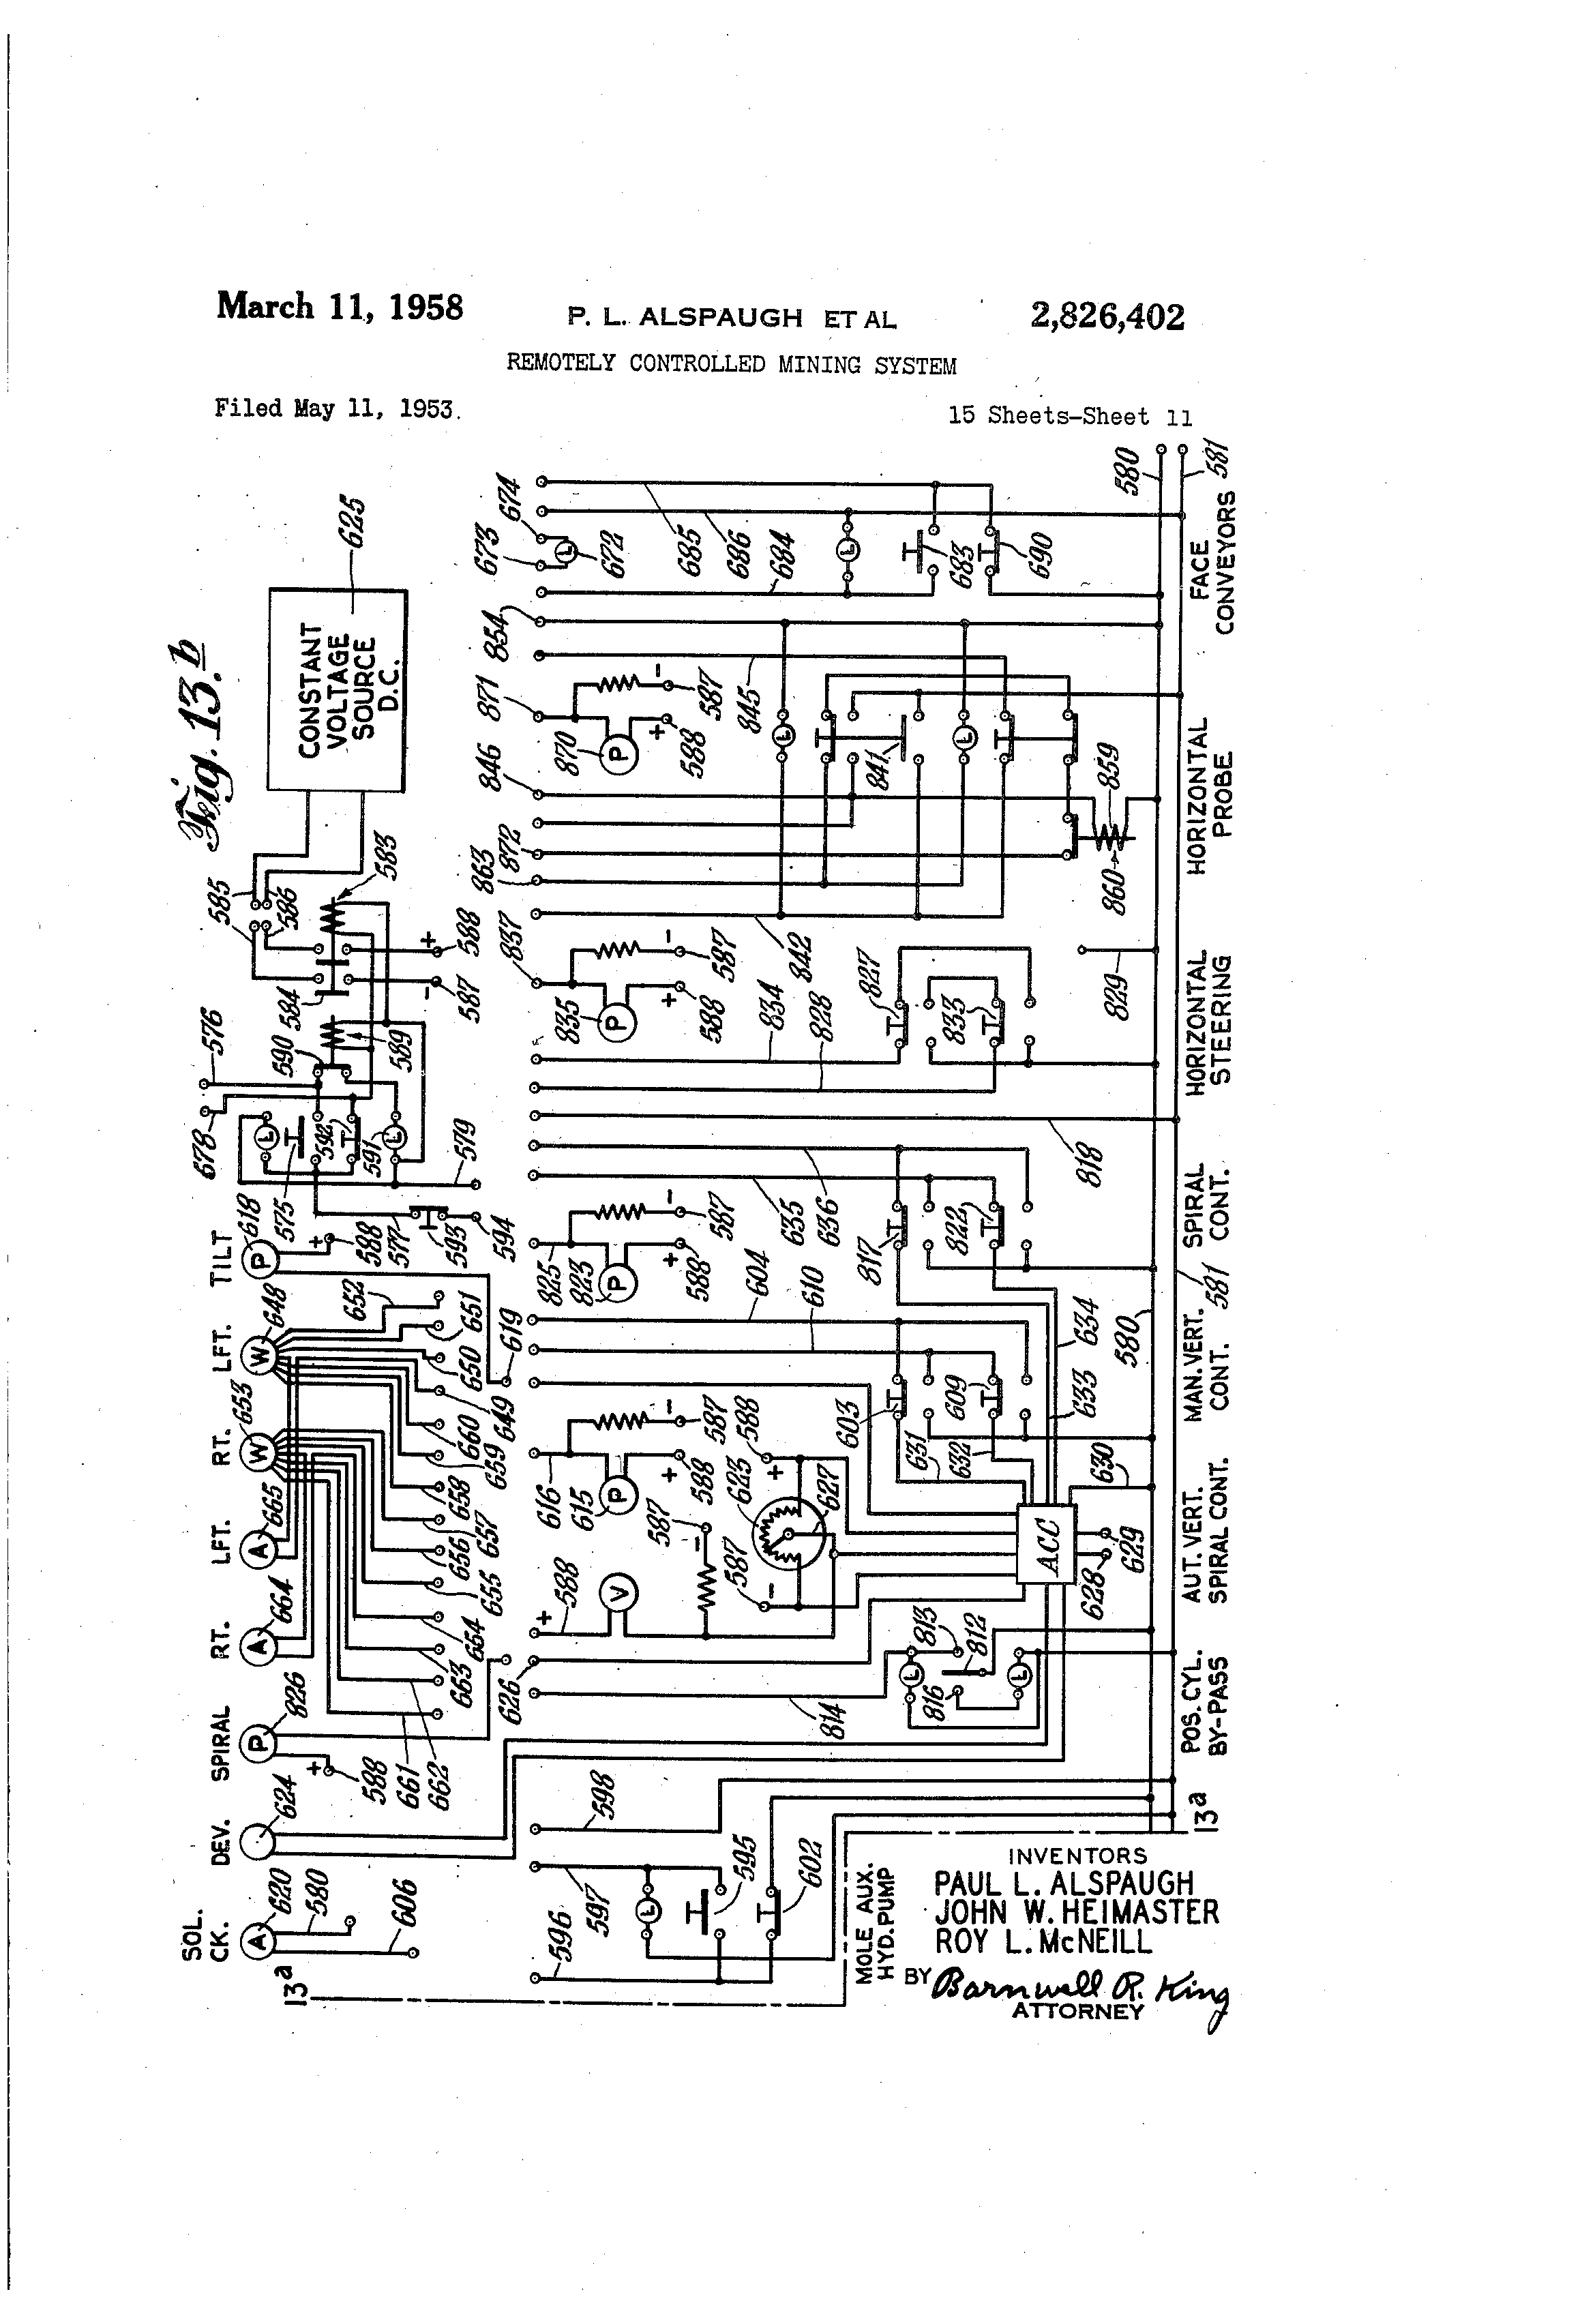 Demag Wiring Diagram 20 Images Diagrams Stahl Chain Hoist Us2826402 10 Cat 563 Roller With